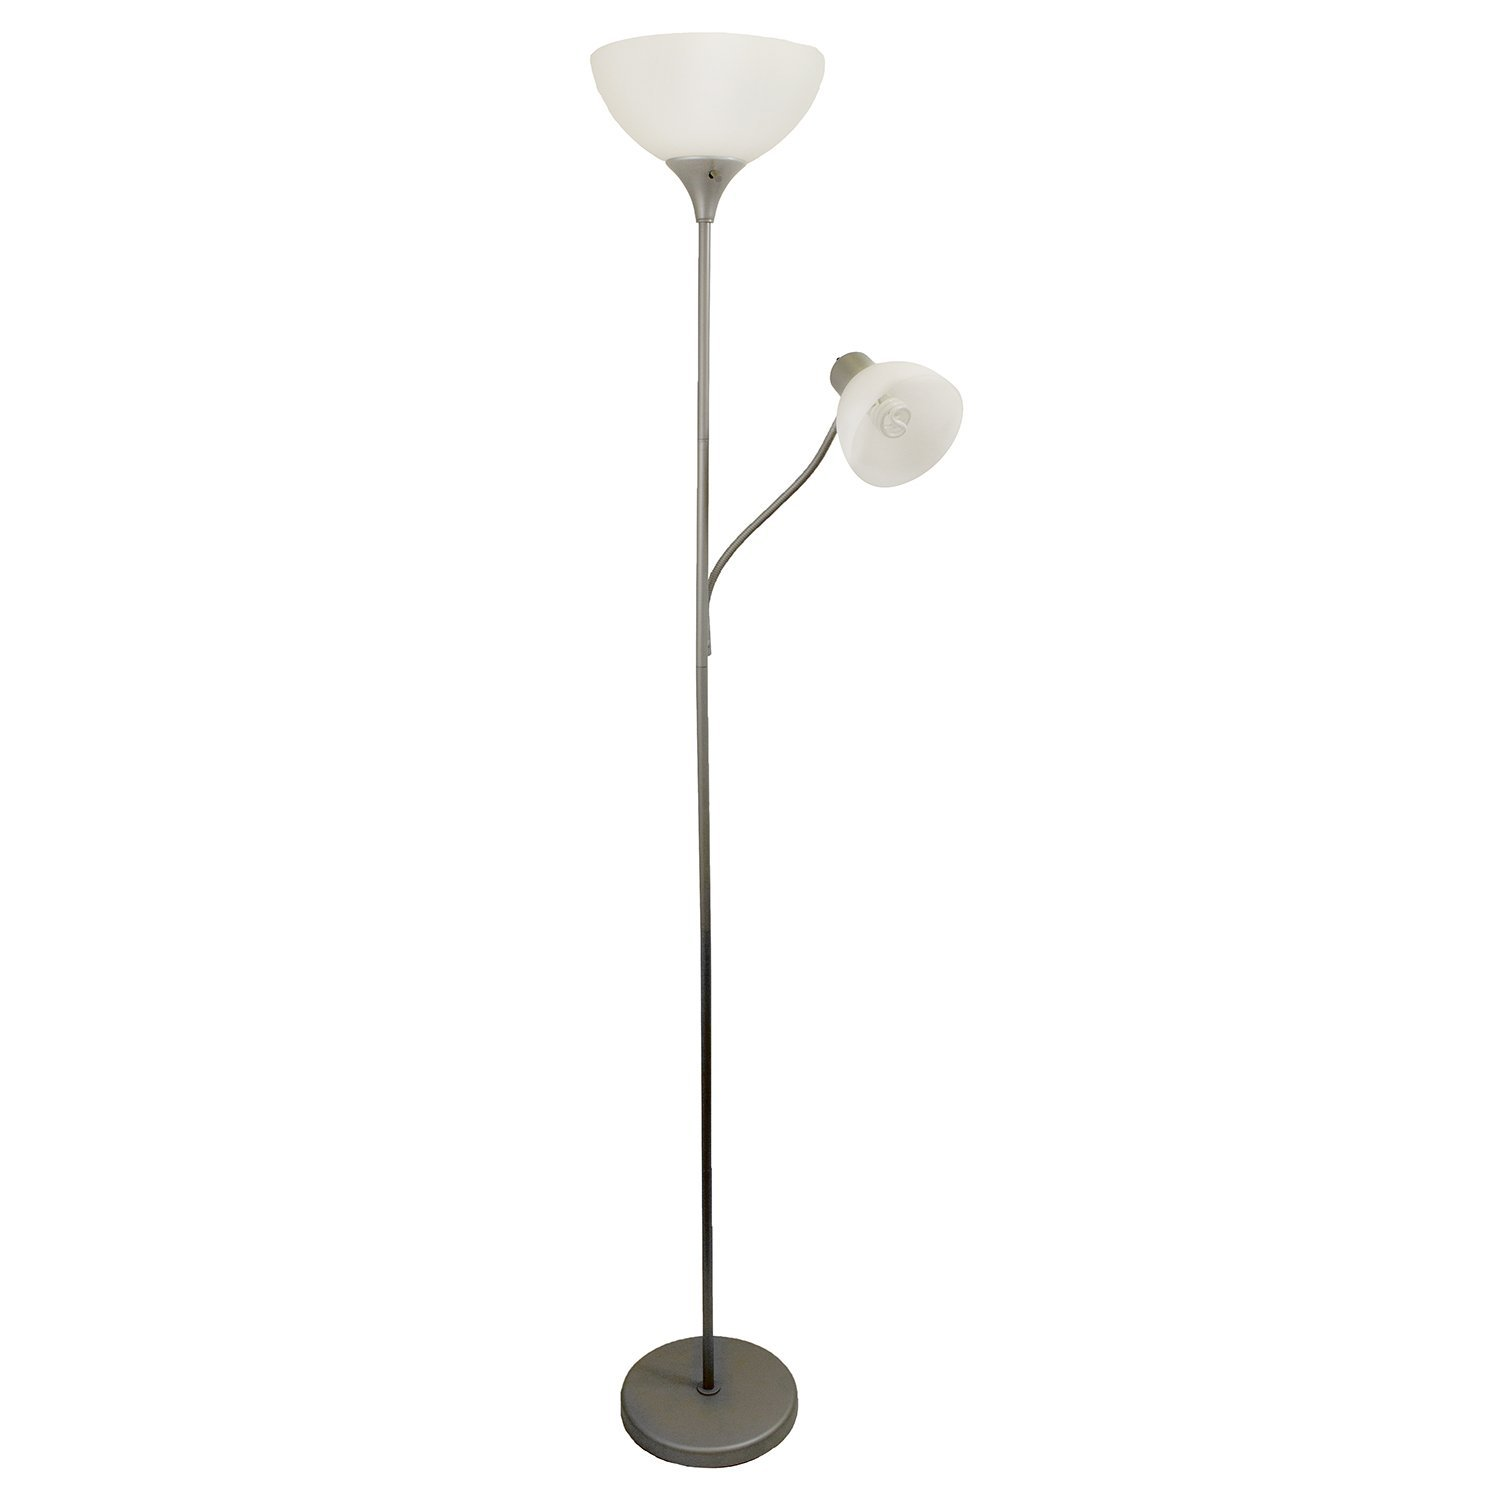 300-watts-halogen-torchiere-floor-lamp-photo-4